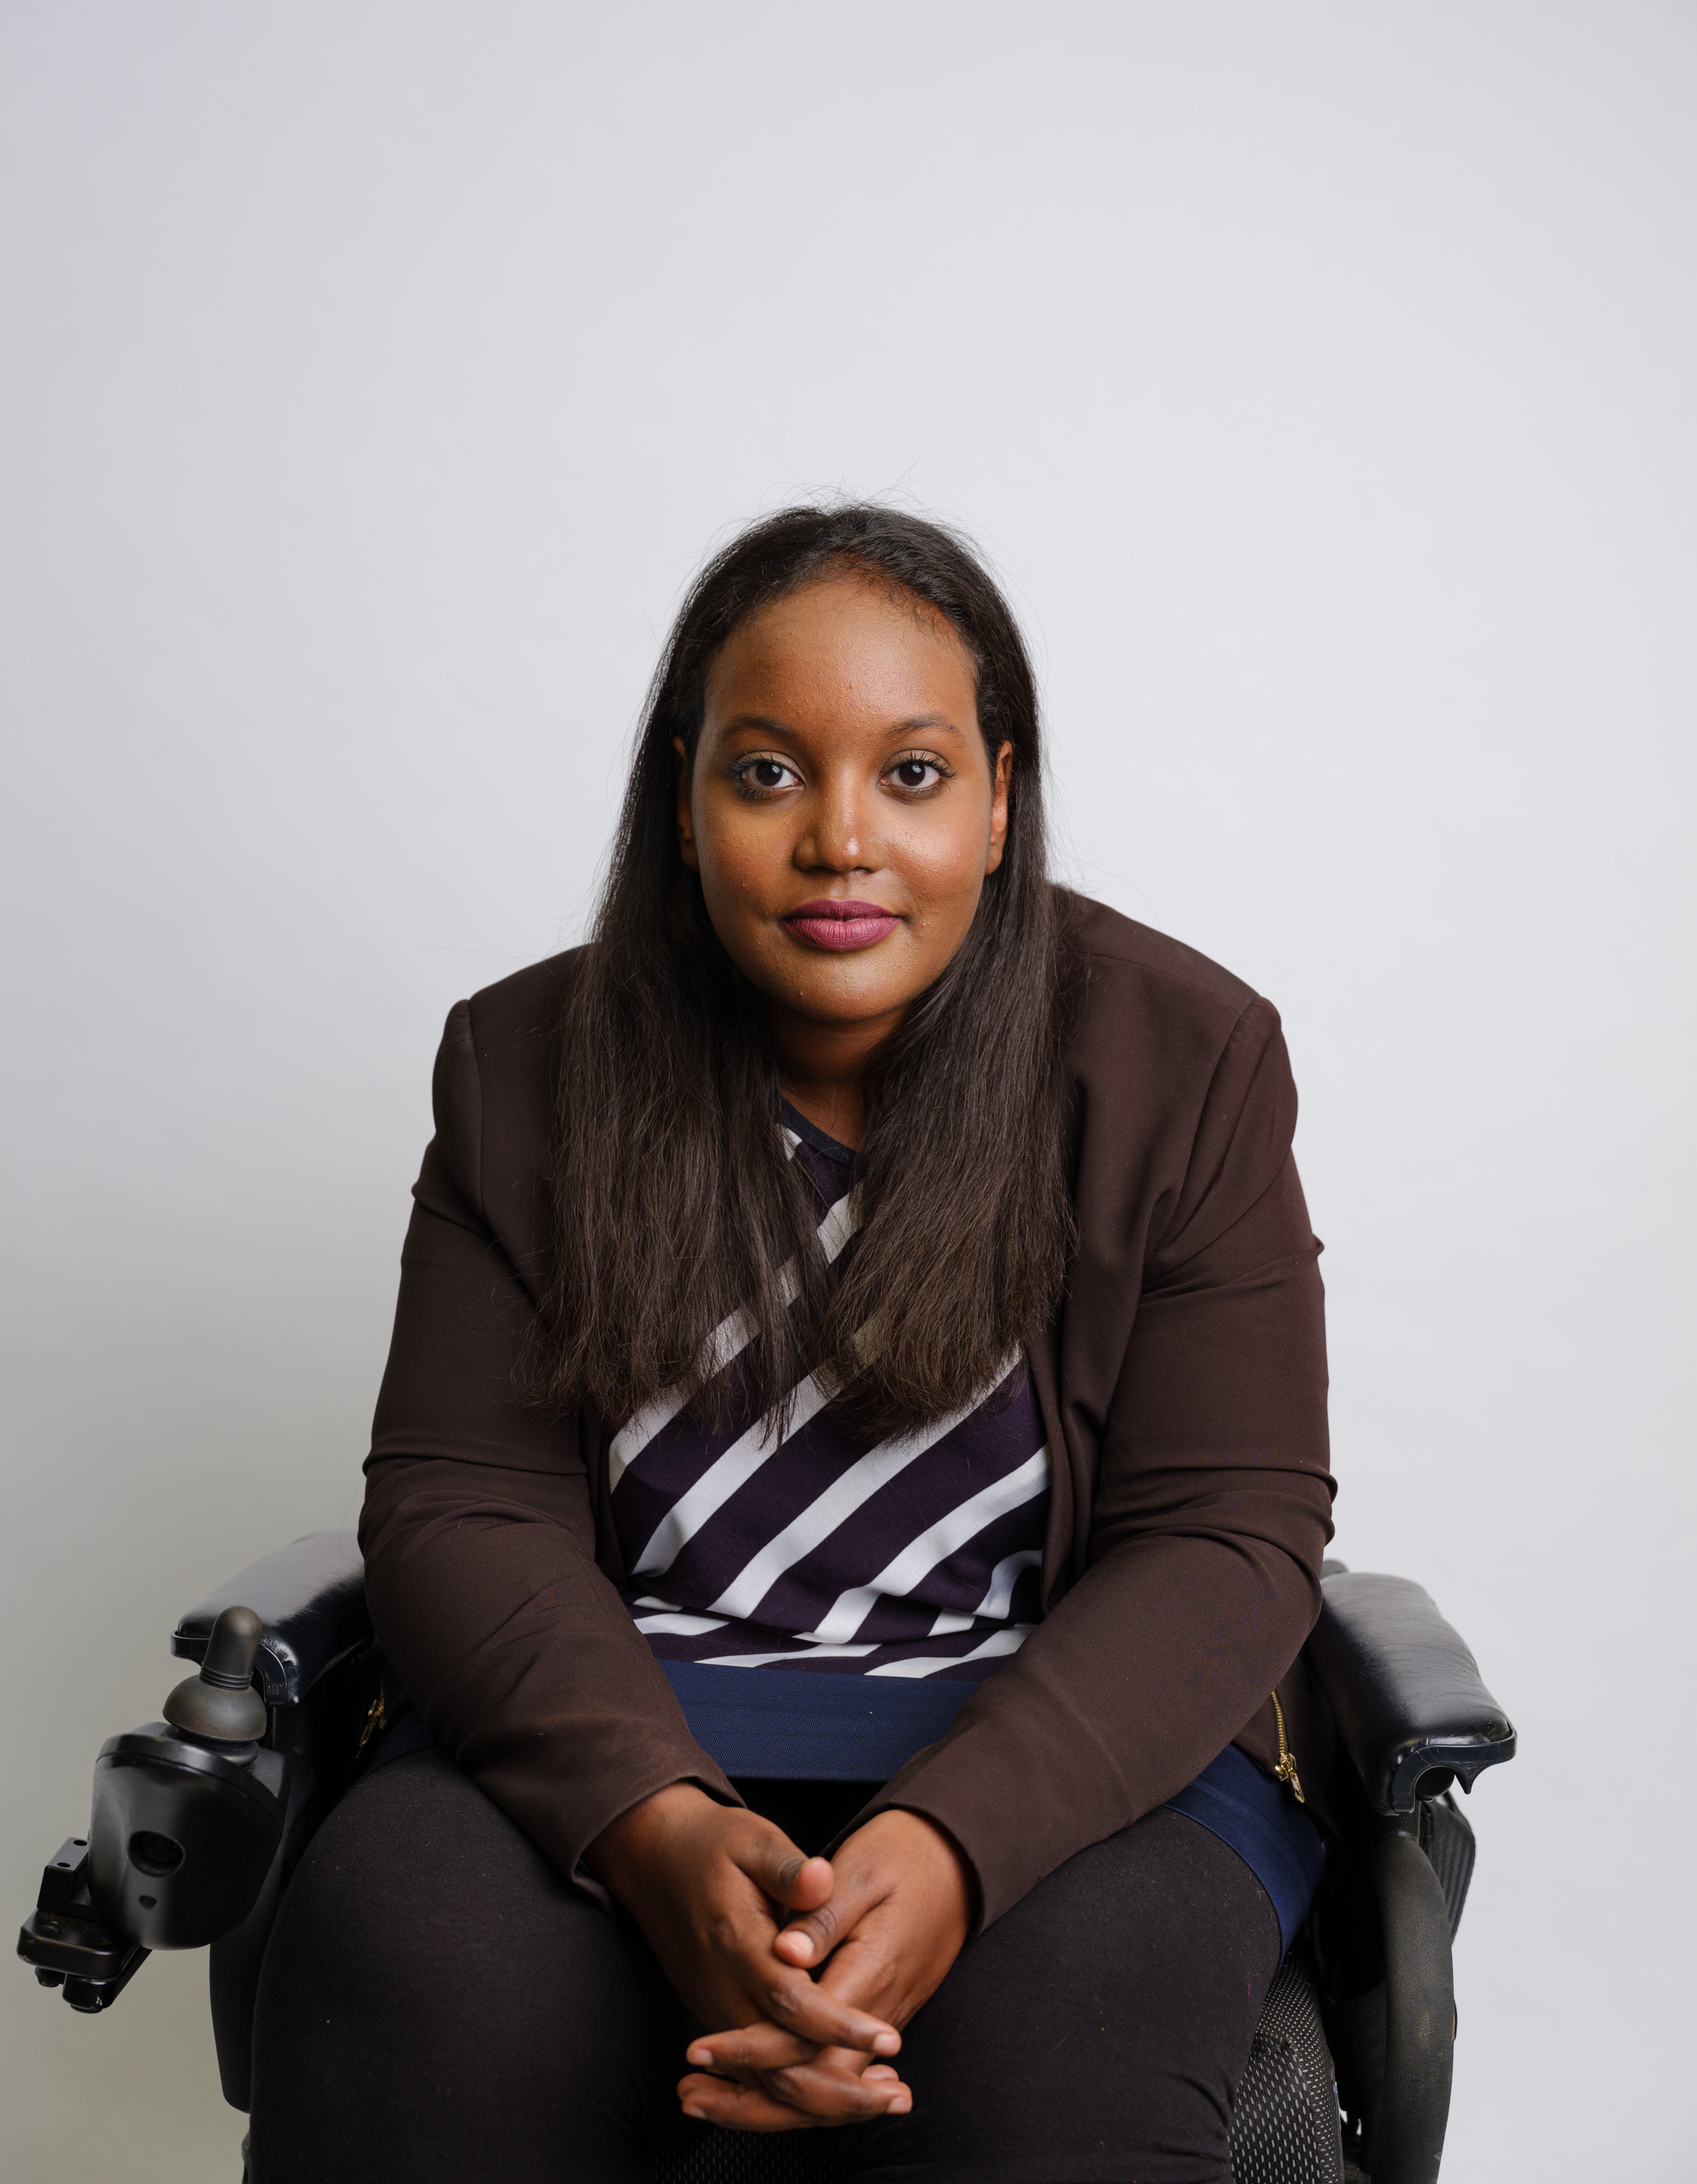 Portrait image of Sarah Jama sitting in a wheelchair and facing the camera.